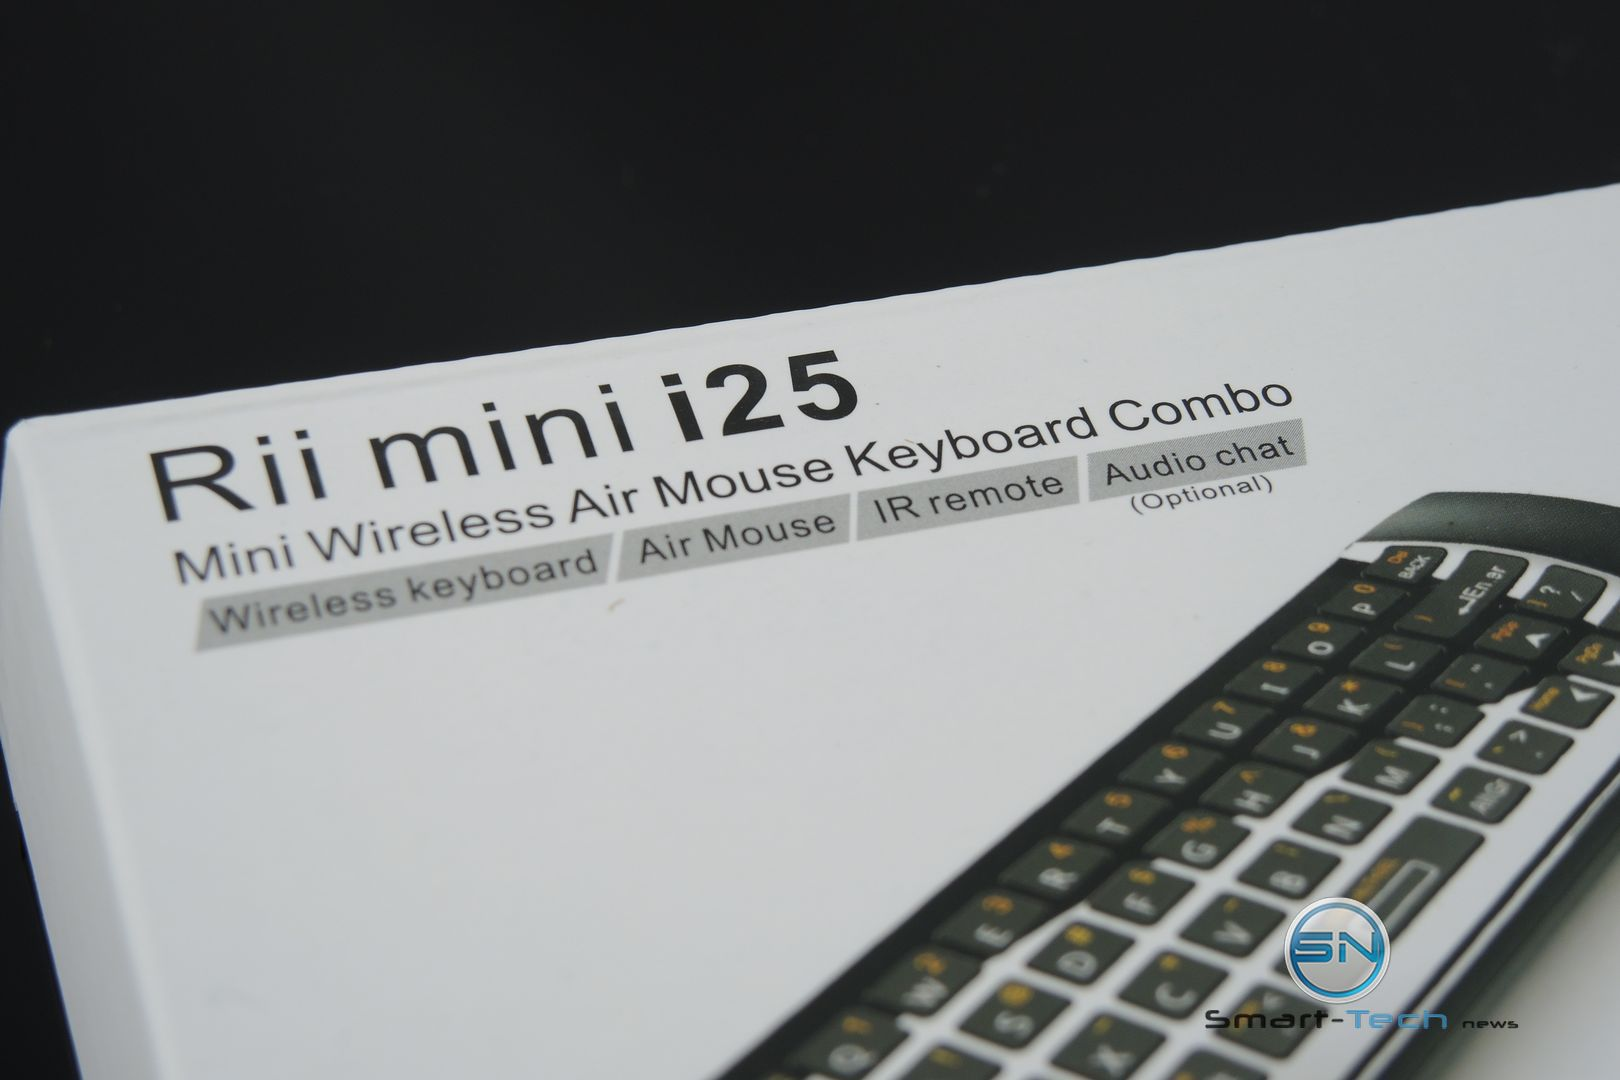 Rii mini i25 Mini Wireless Air Mouse Keyboard Combo